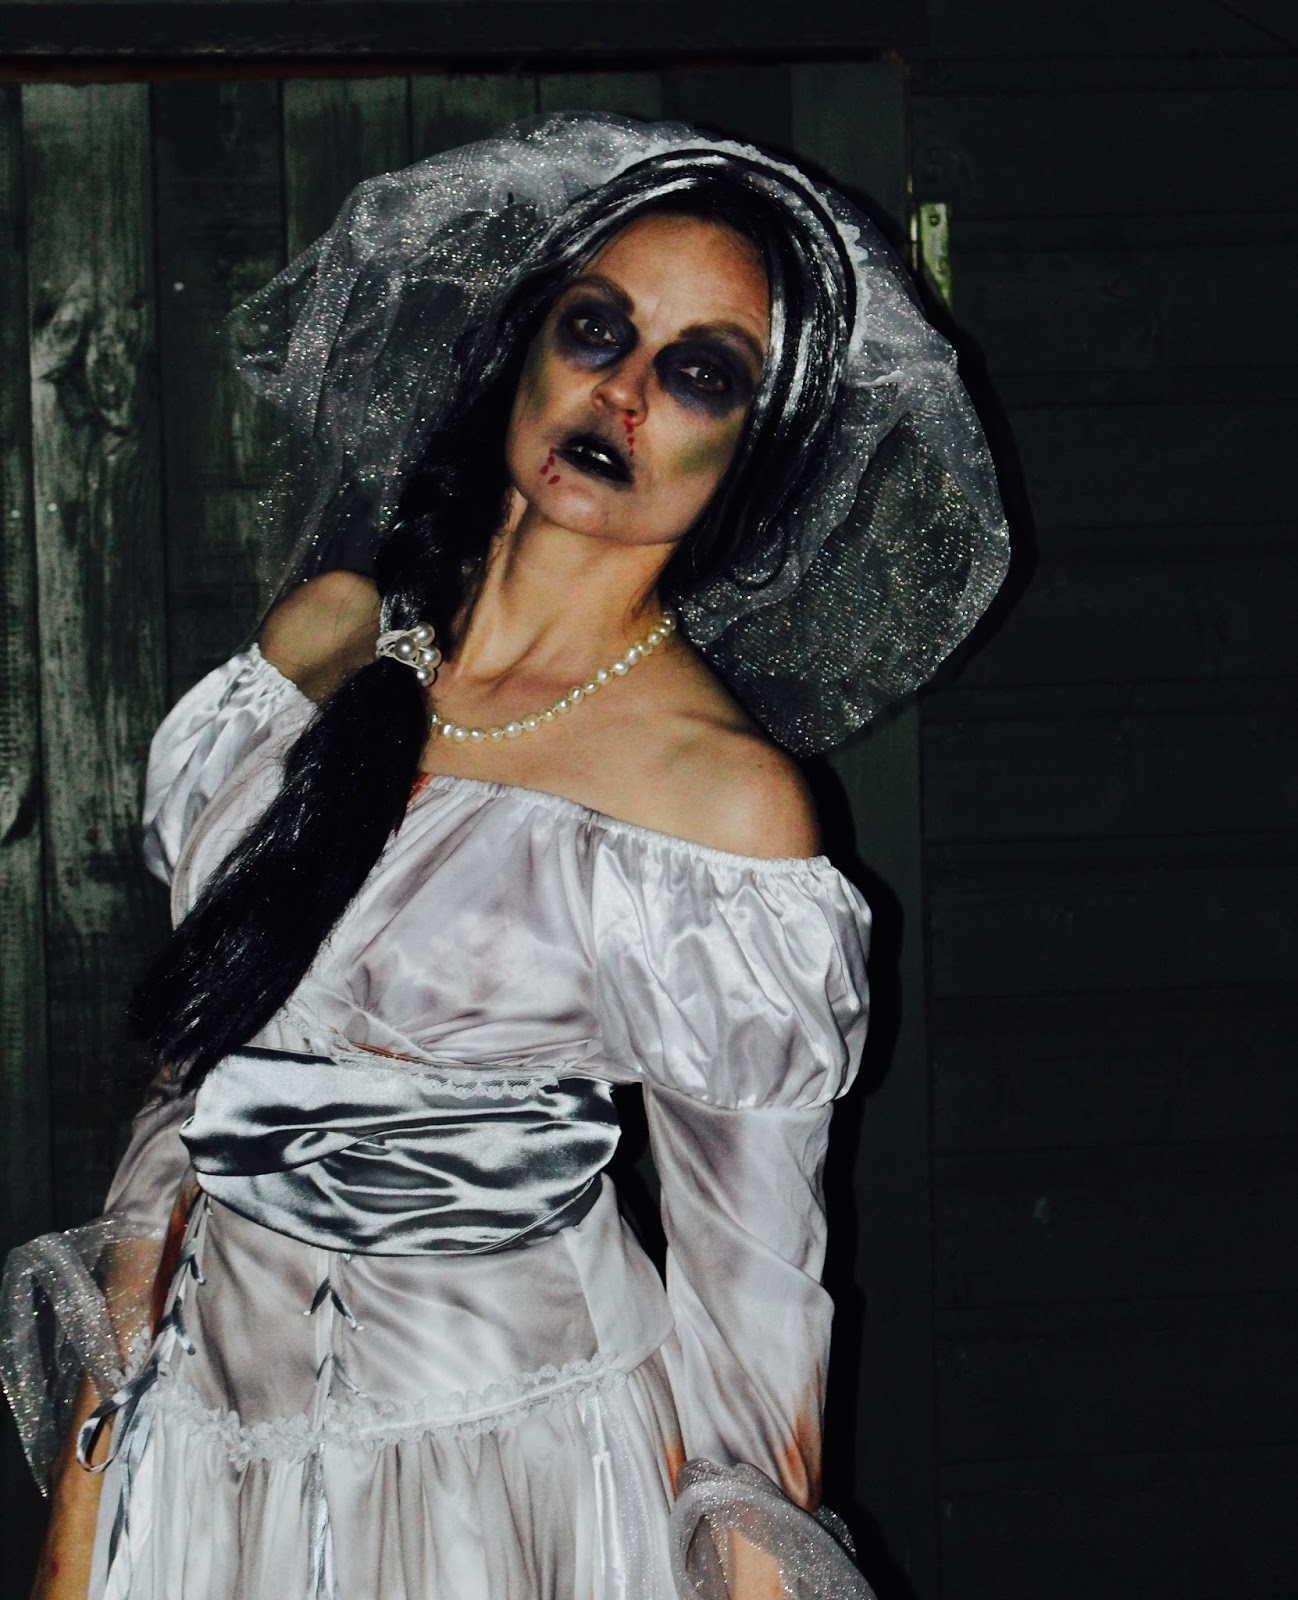 Corpse bride costume & makeup | Fakefabulous